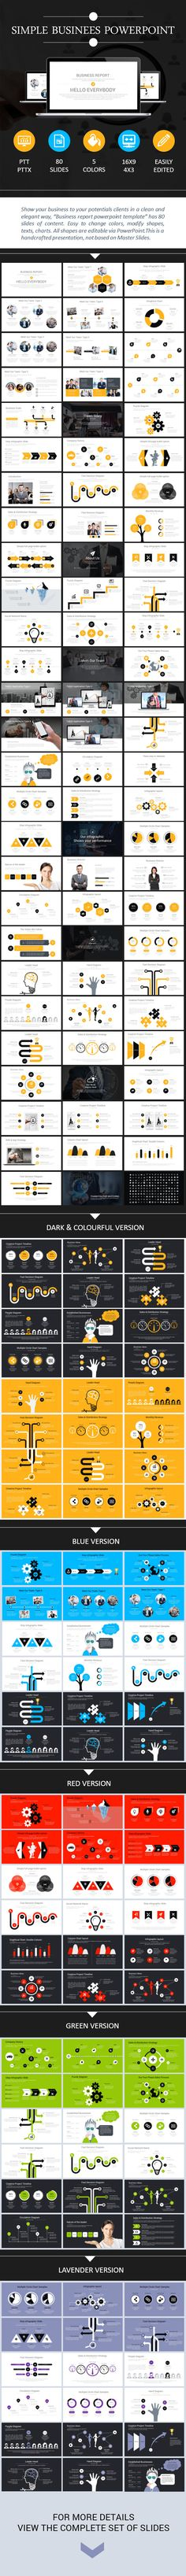 Buy Simple Businees Powerpoint by phambach on GraphicRiver. Simple Businees Powerpoint General Features 80 well designed powerpoint slides and aspect ratio 15 Cool Them. Keynote Design, Brochure Design, Presentation Layout, Presentation Templates, Power Point Template, Cool Powerpoint, Aspect Ratio, Slide Design, Communication Design